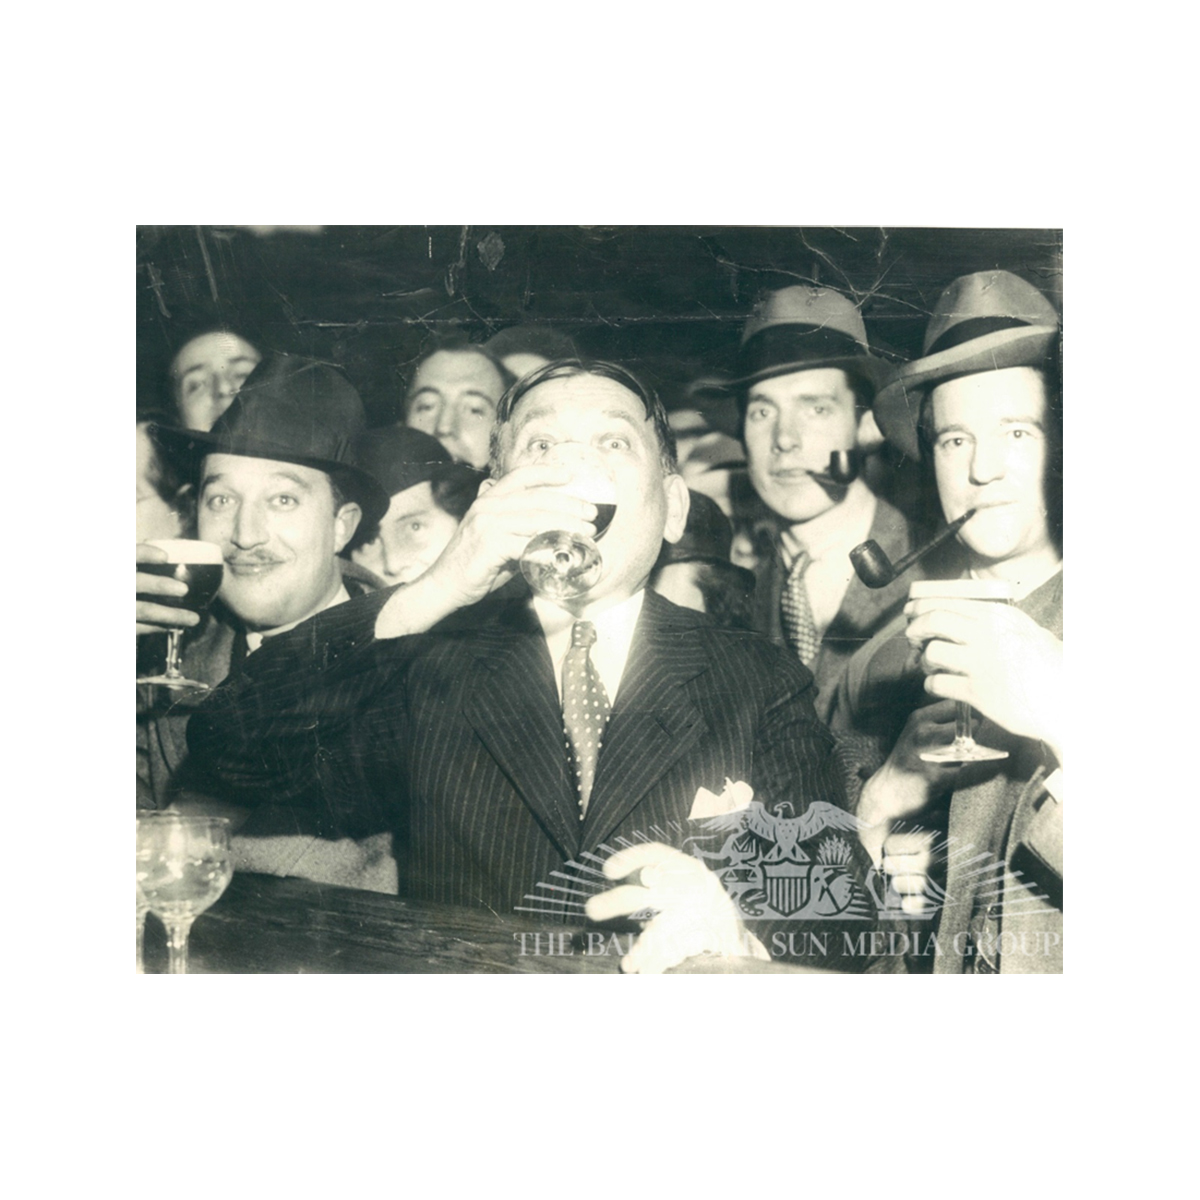 End of Prohibition (1933)